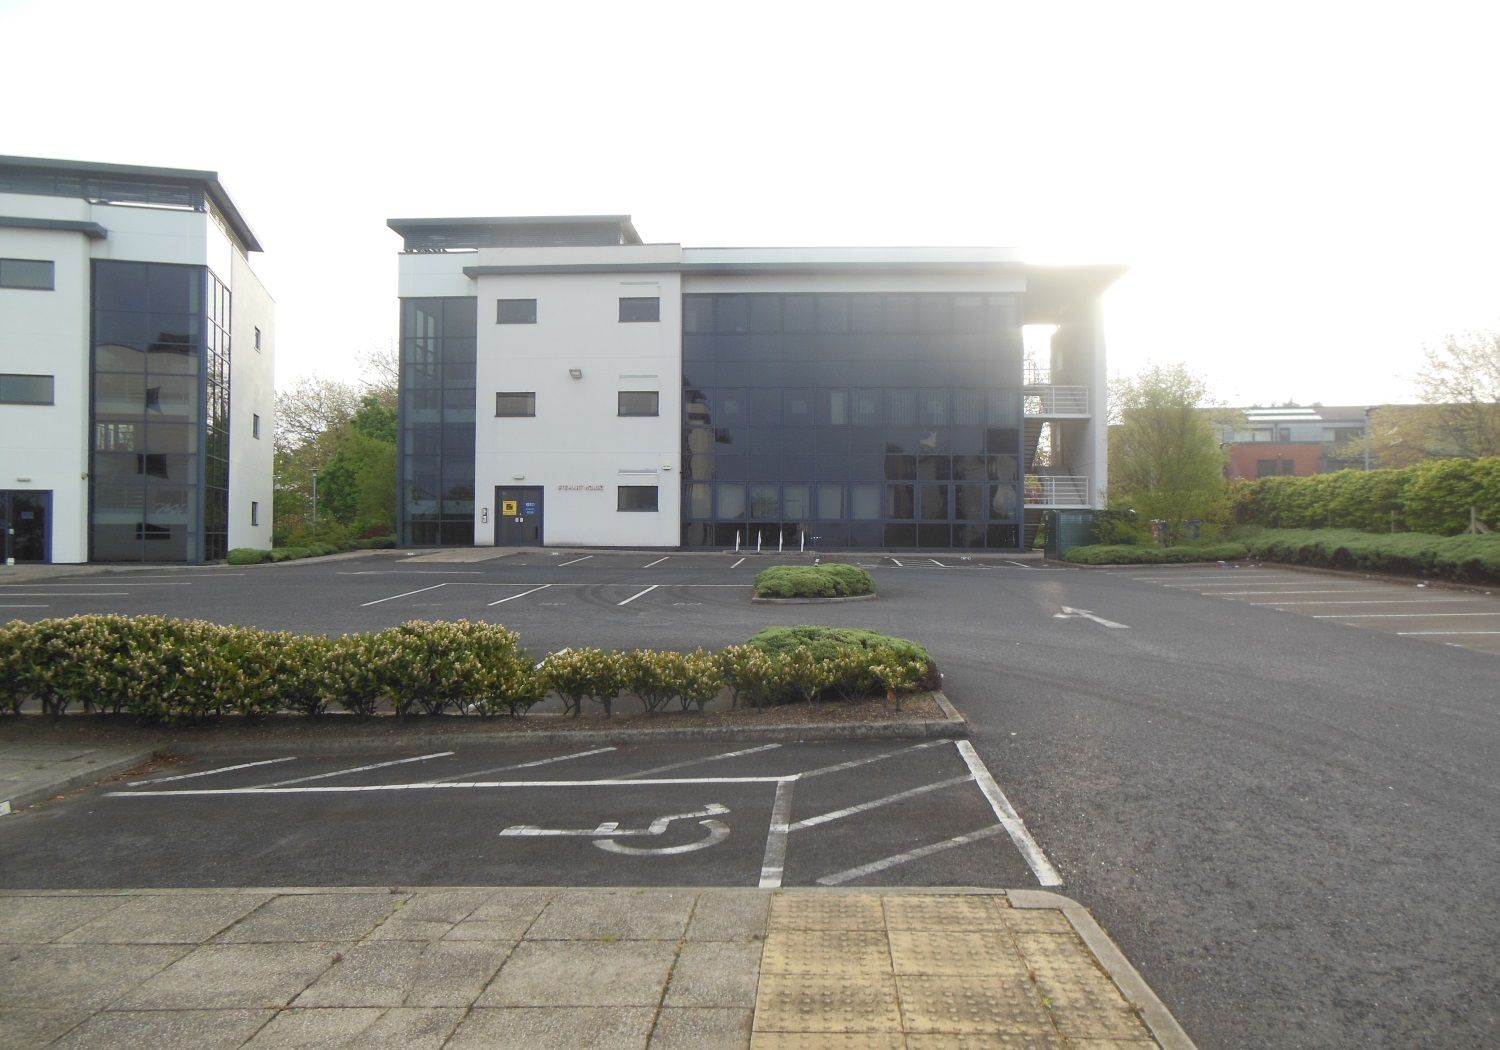 Grade-A offices to let at South Grove, Moorgate, Rotherham.